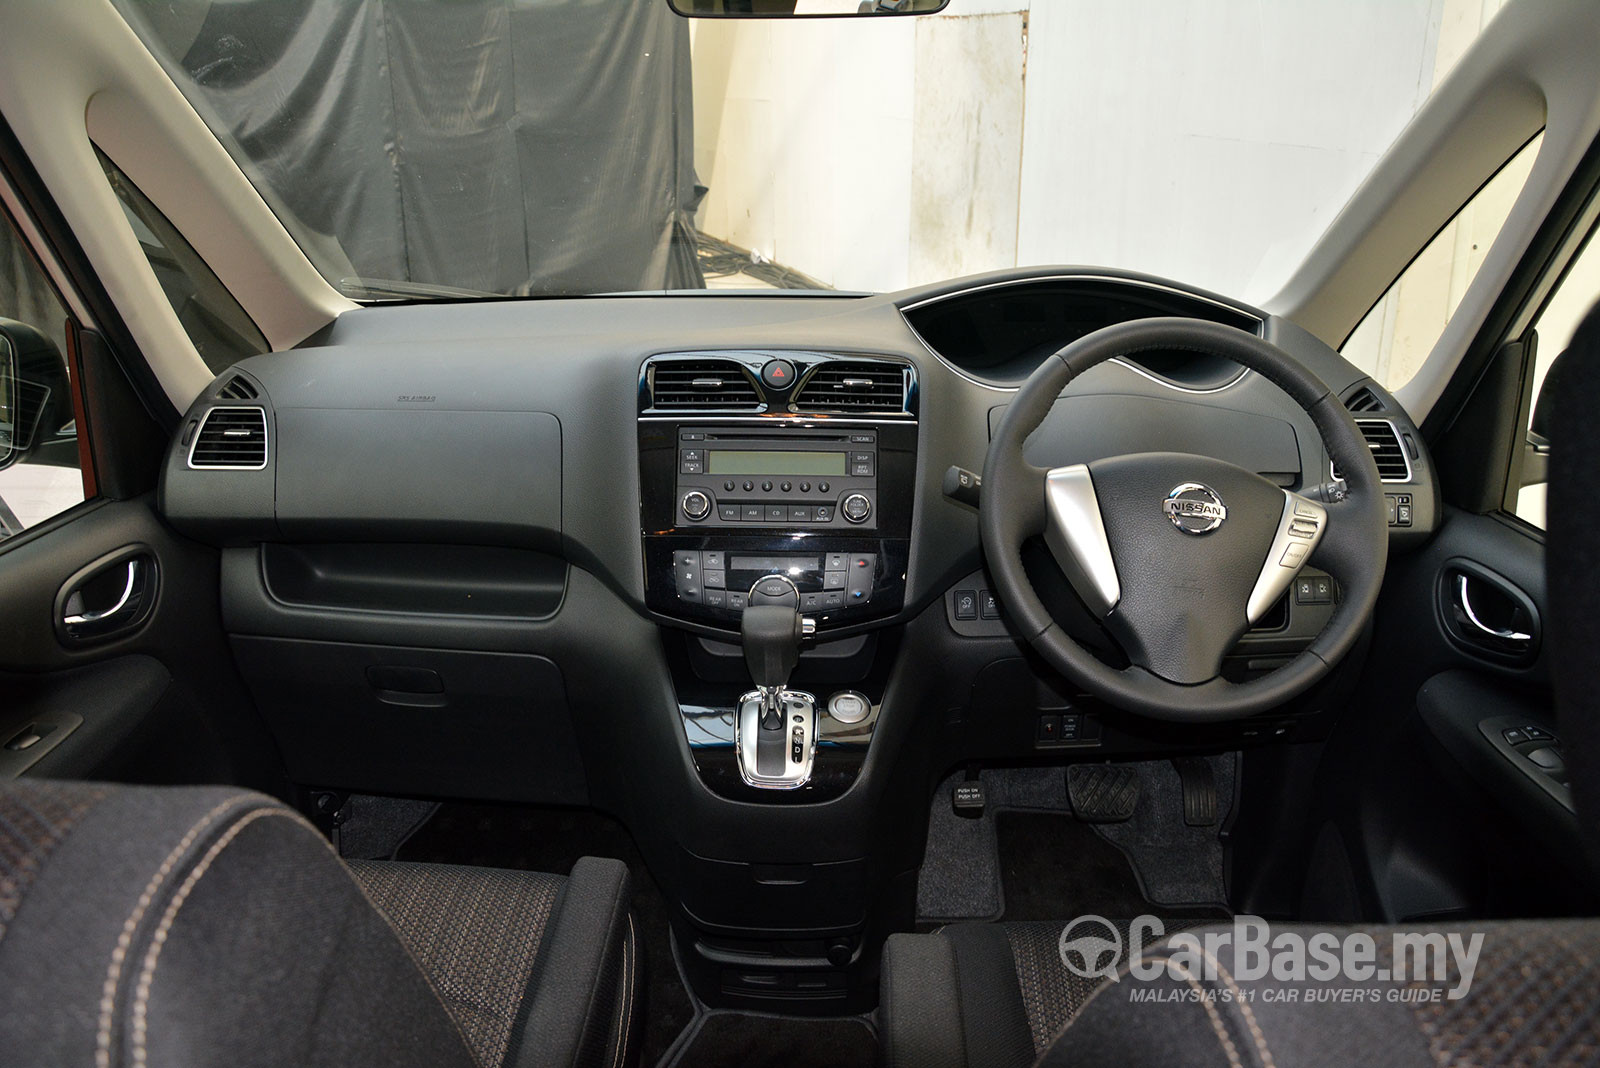 One Stop Automotive >> Nissan Serena S-Hybrid C26 Facelift (2014) Interior Image #16660 in Malaysia - Reviews, Specs ...